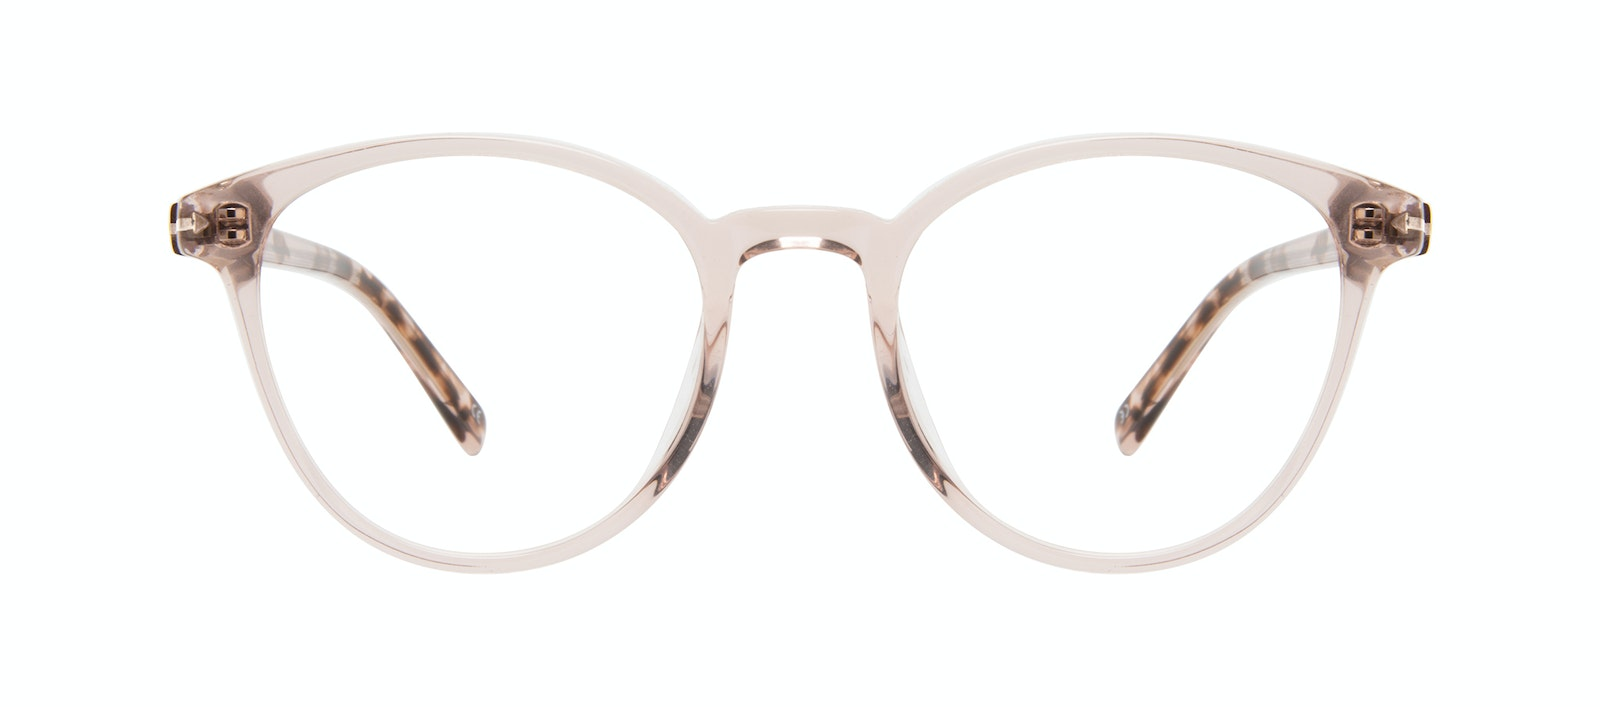 Affordable Fashion Glasses Round Eyeglasses Women London Blush Front